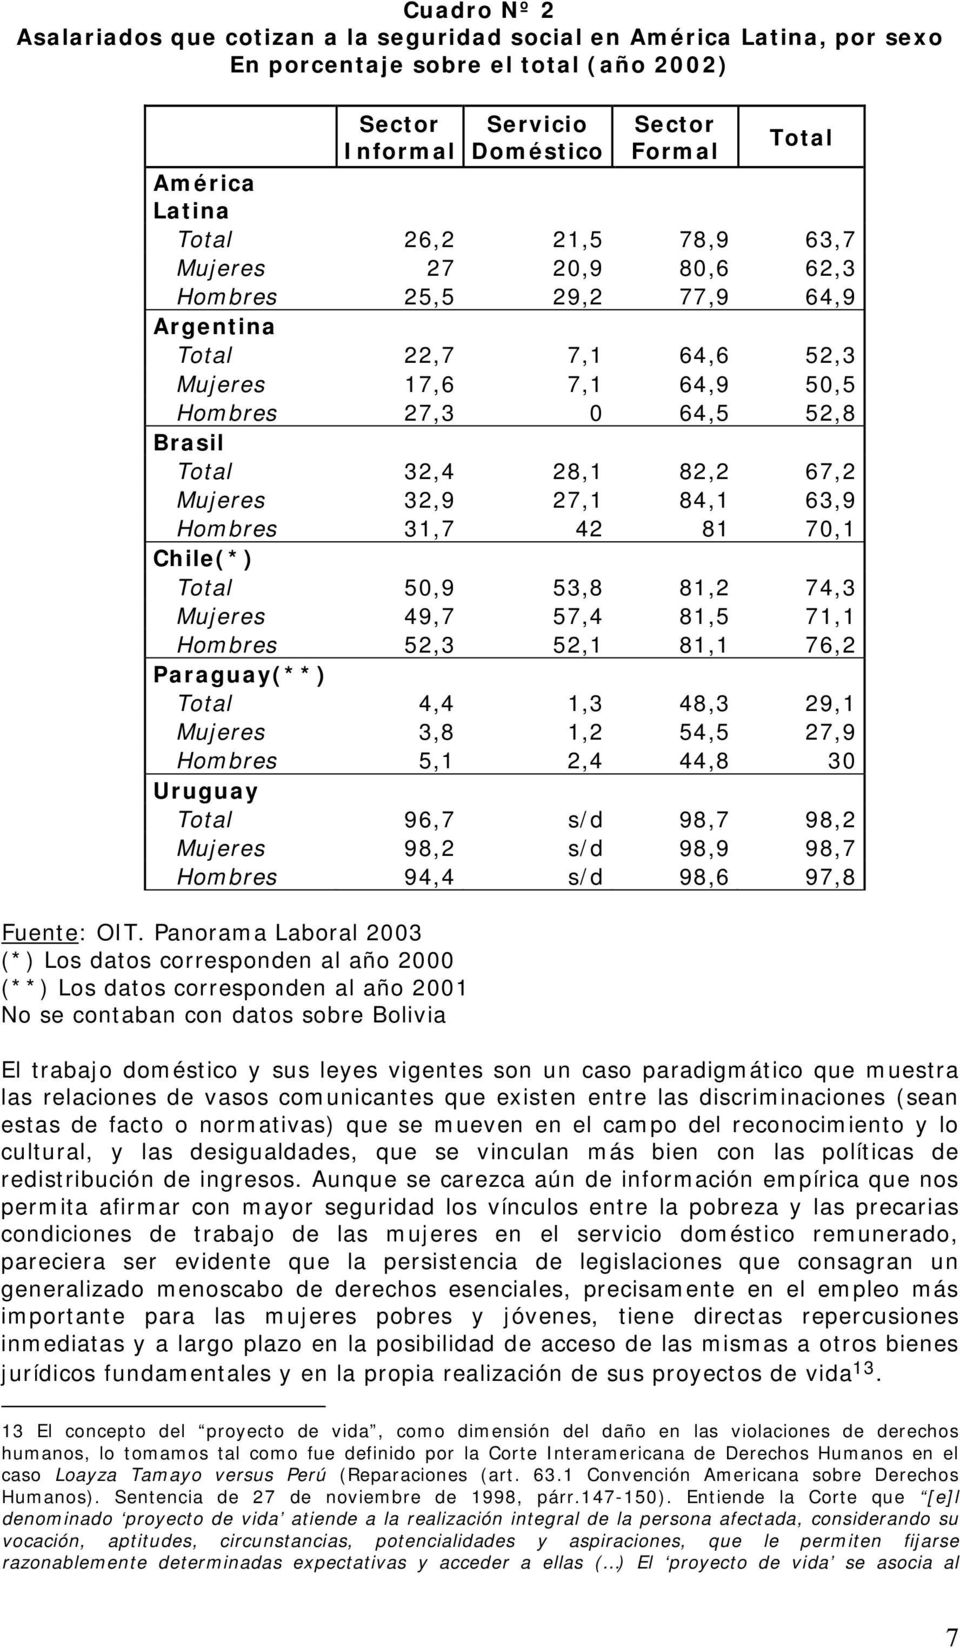 Mujeres 32,9 27,1 84,1 63,9 Hombres 31,7 42 81 70,1 Chile(*) Total 50,9 53,8 81,2 74,3 Mujeres 49,7 57,4 81,5 71,1 Hombres 52,3 52,1 81,1 76,2 Paraguay(**) Total 4,4 1,3 48,3 29,1 Mujeres 3,8 1,2